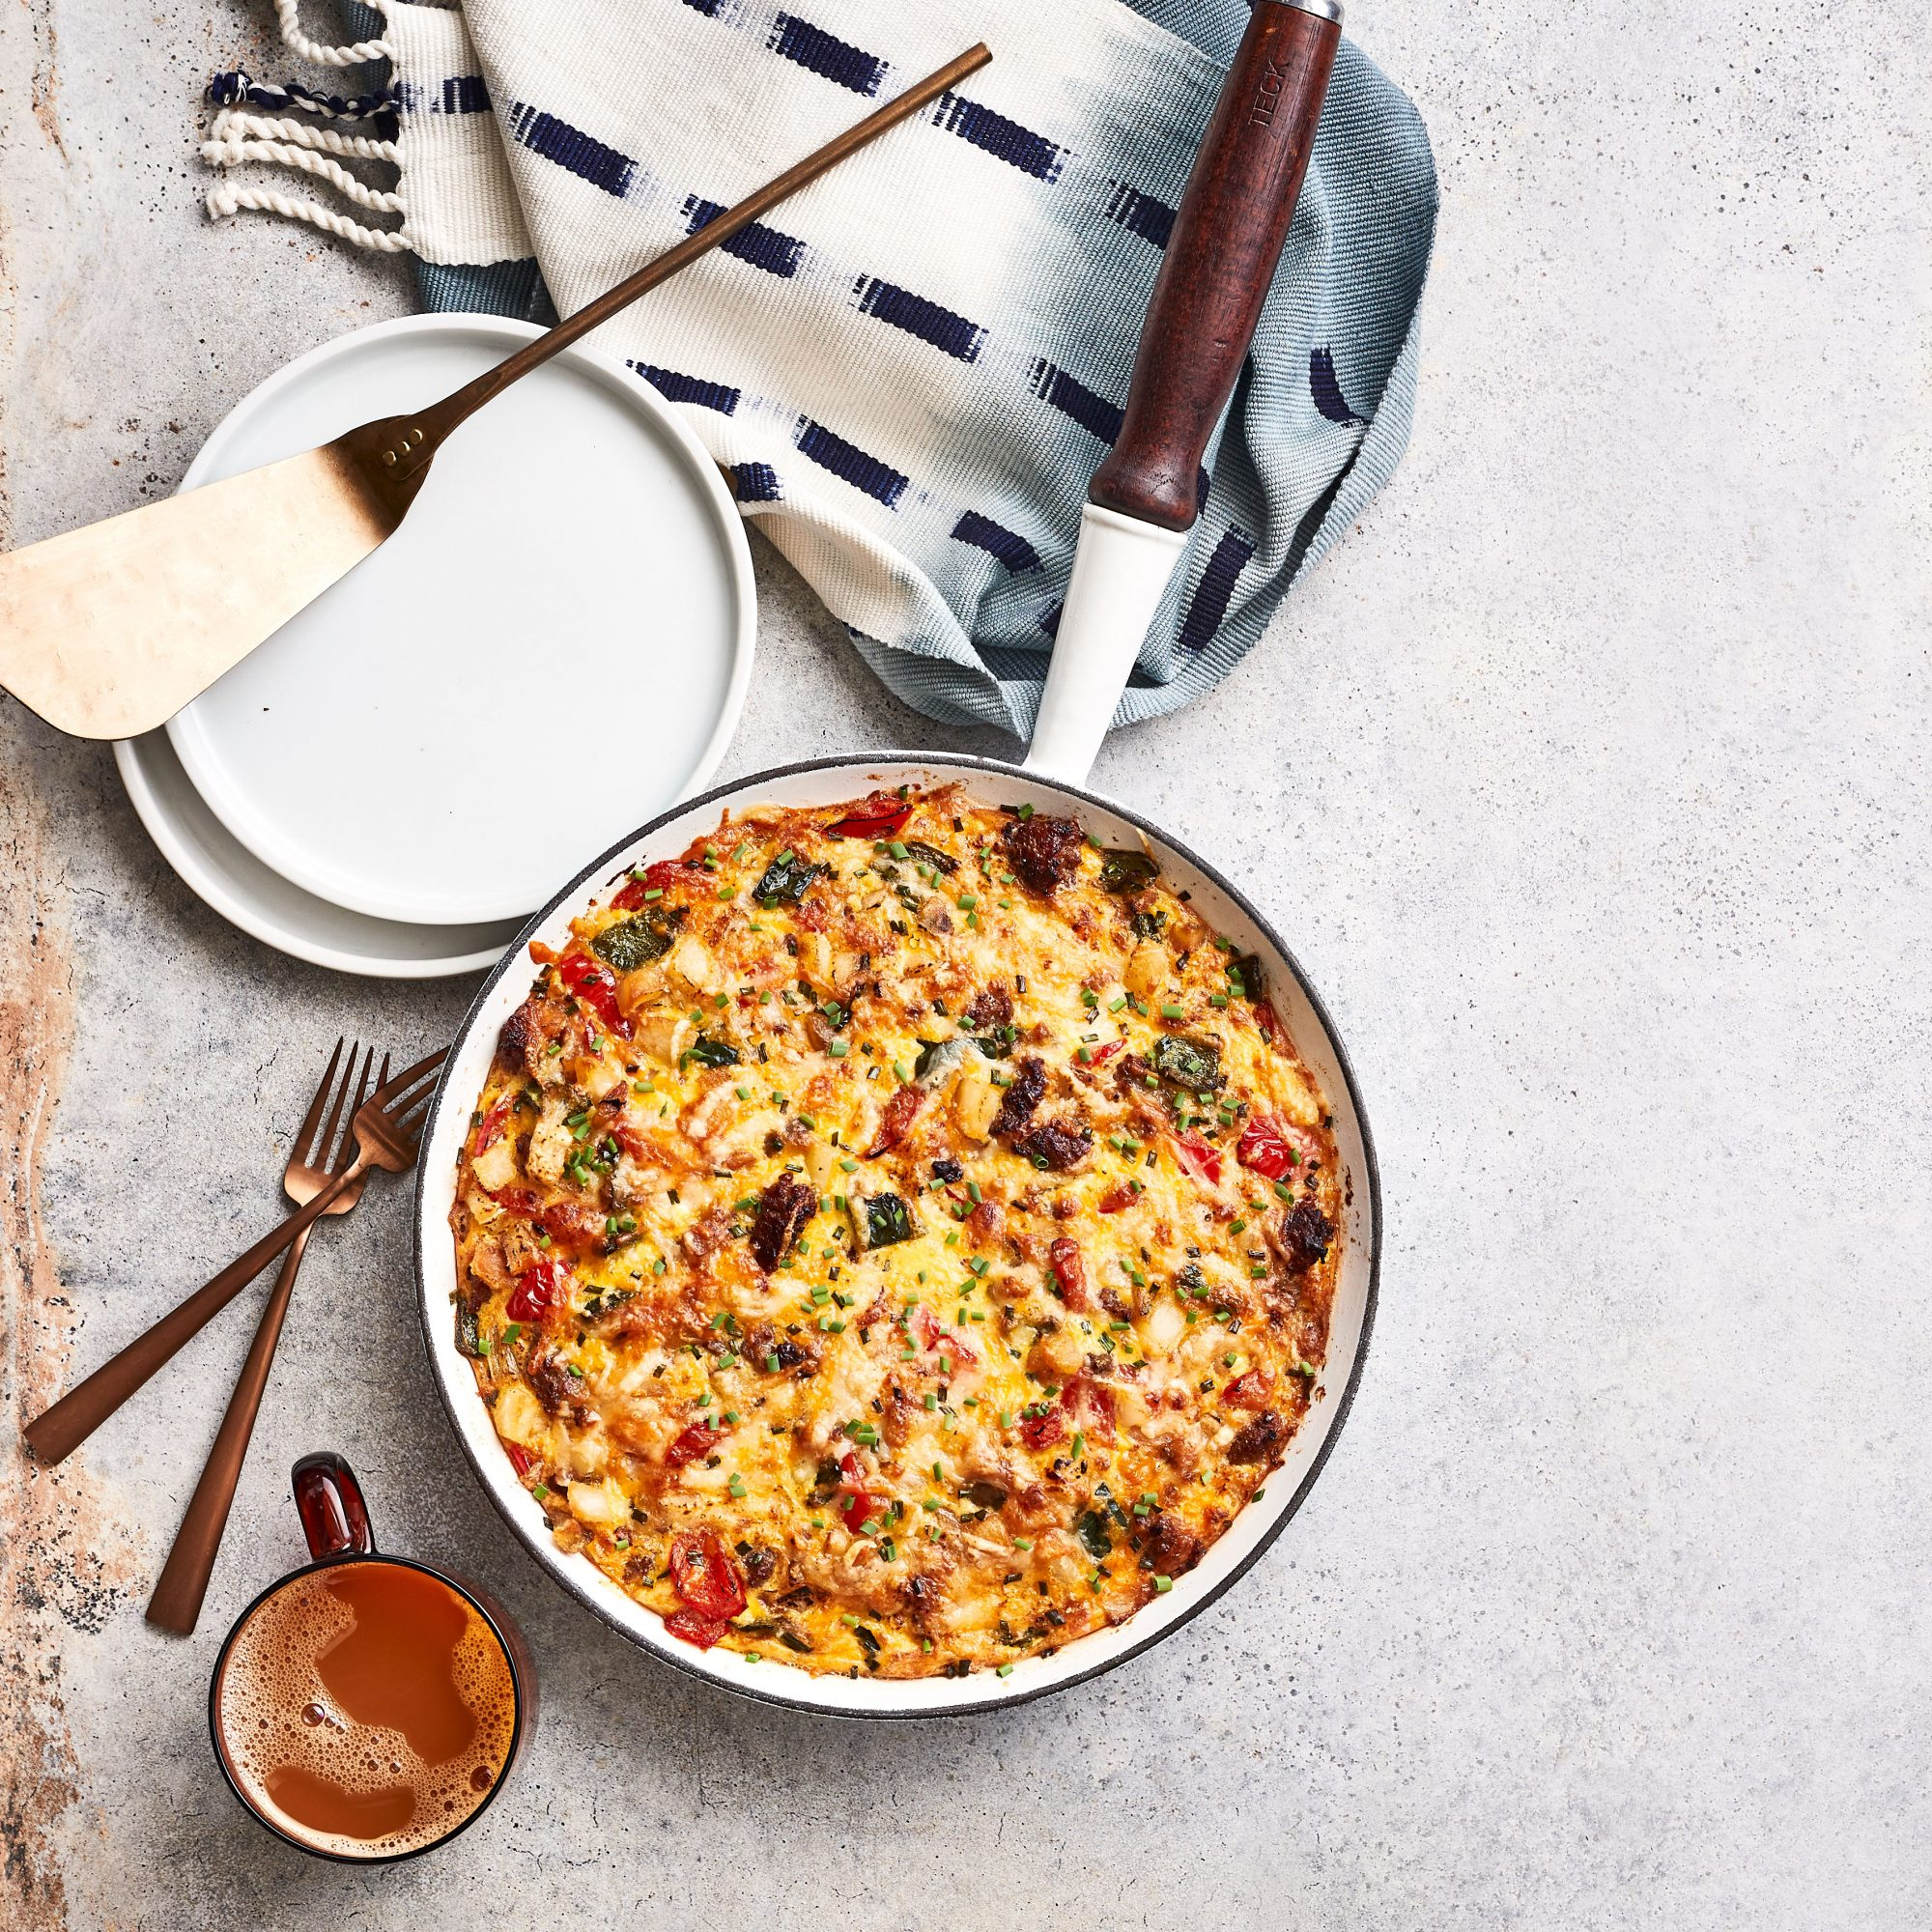 Cheesy Sausage, Egg, and Hash Brown Casserole